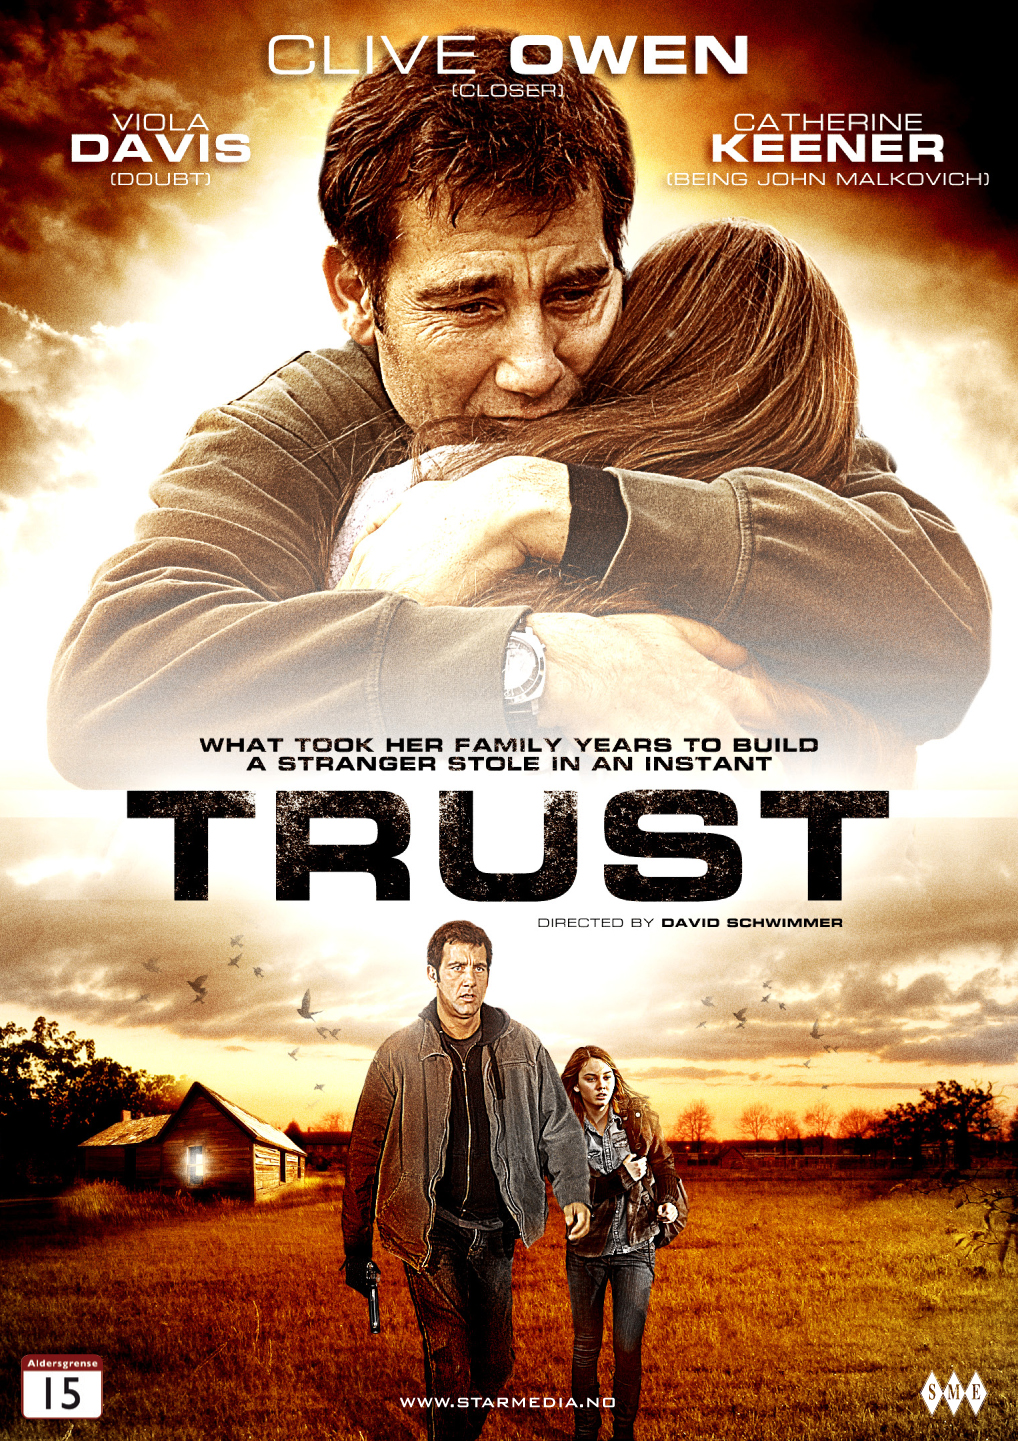 Bilderesultat for Trust clive owen dvd cover